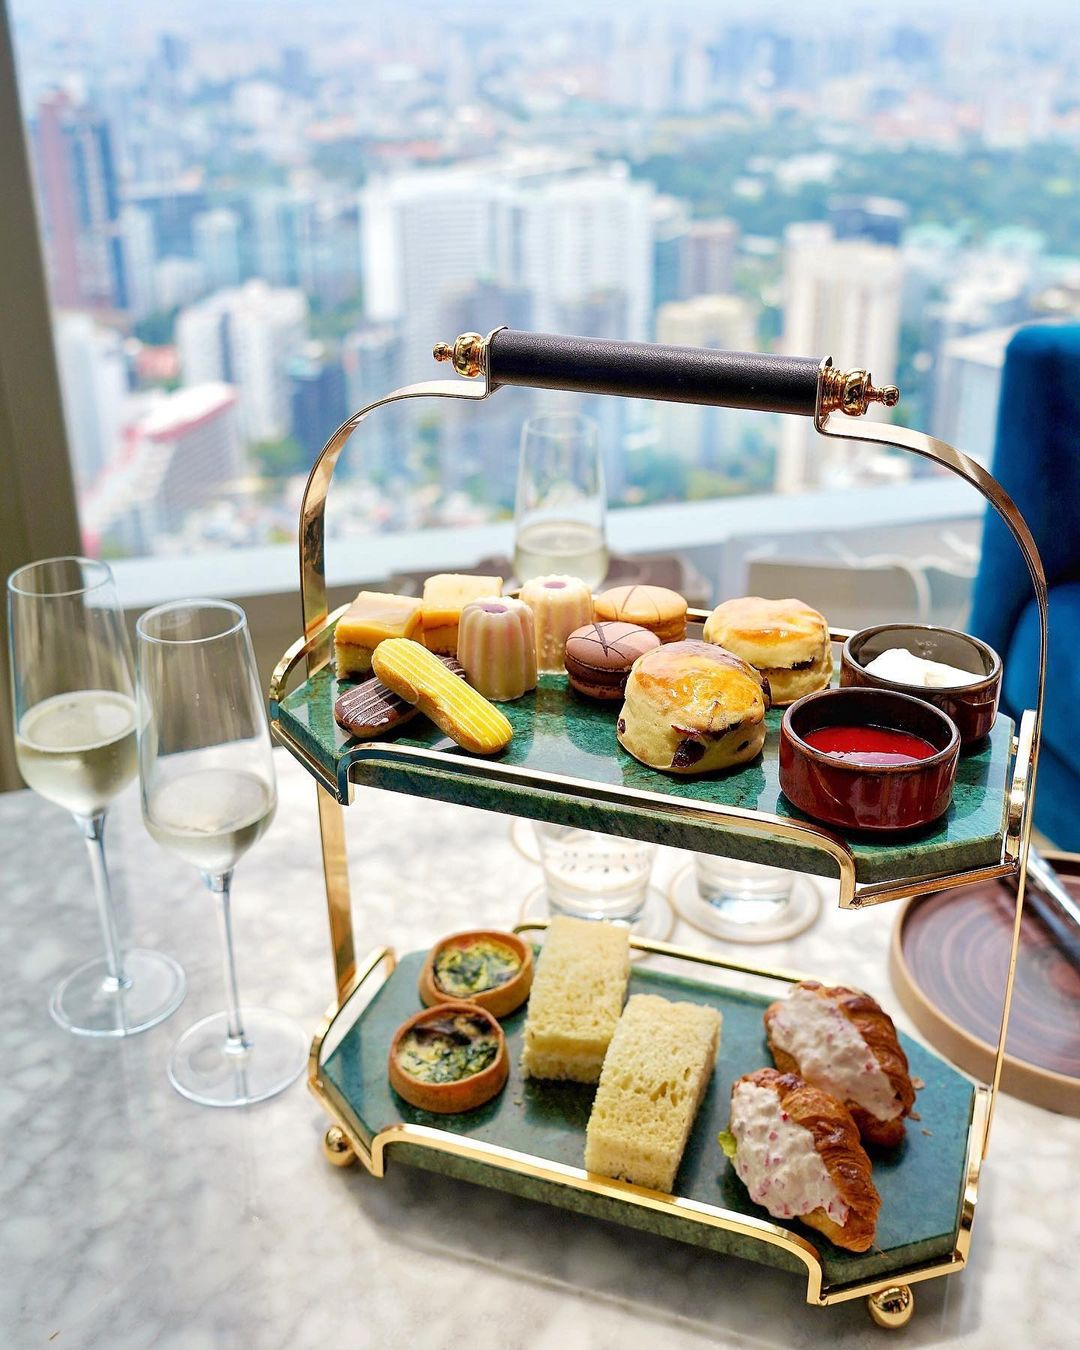 1-For-1 High Tea Ion Orchard